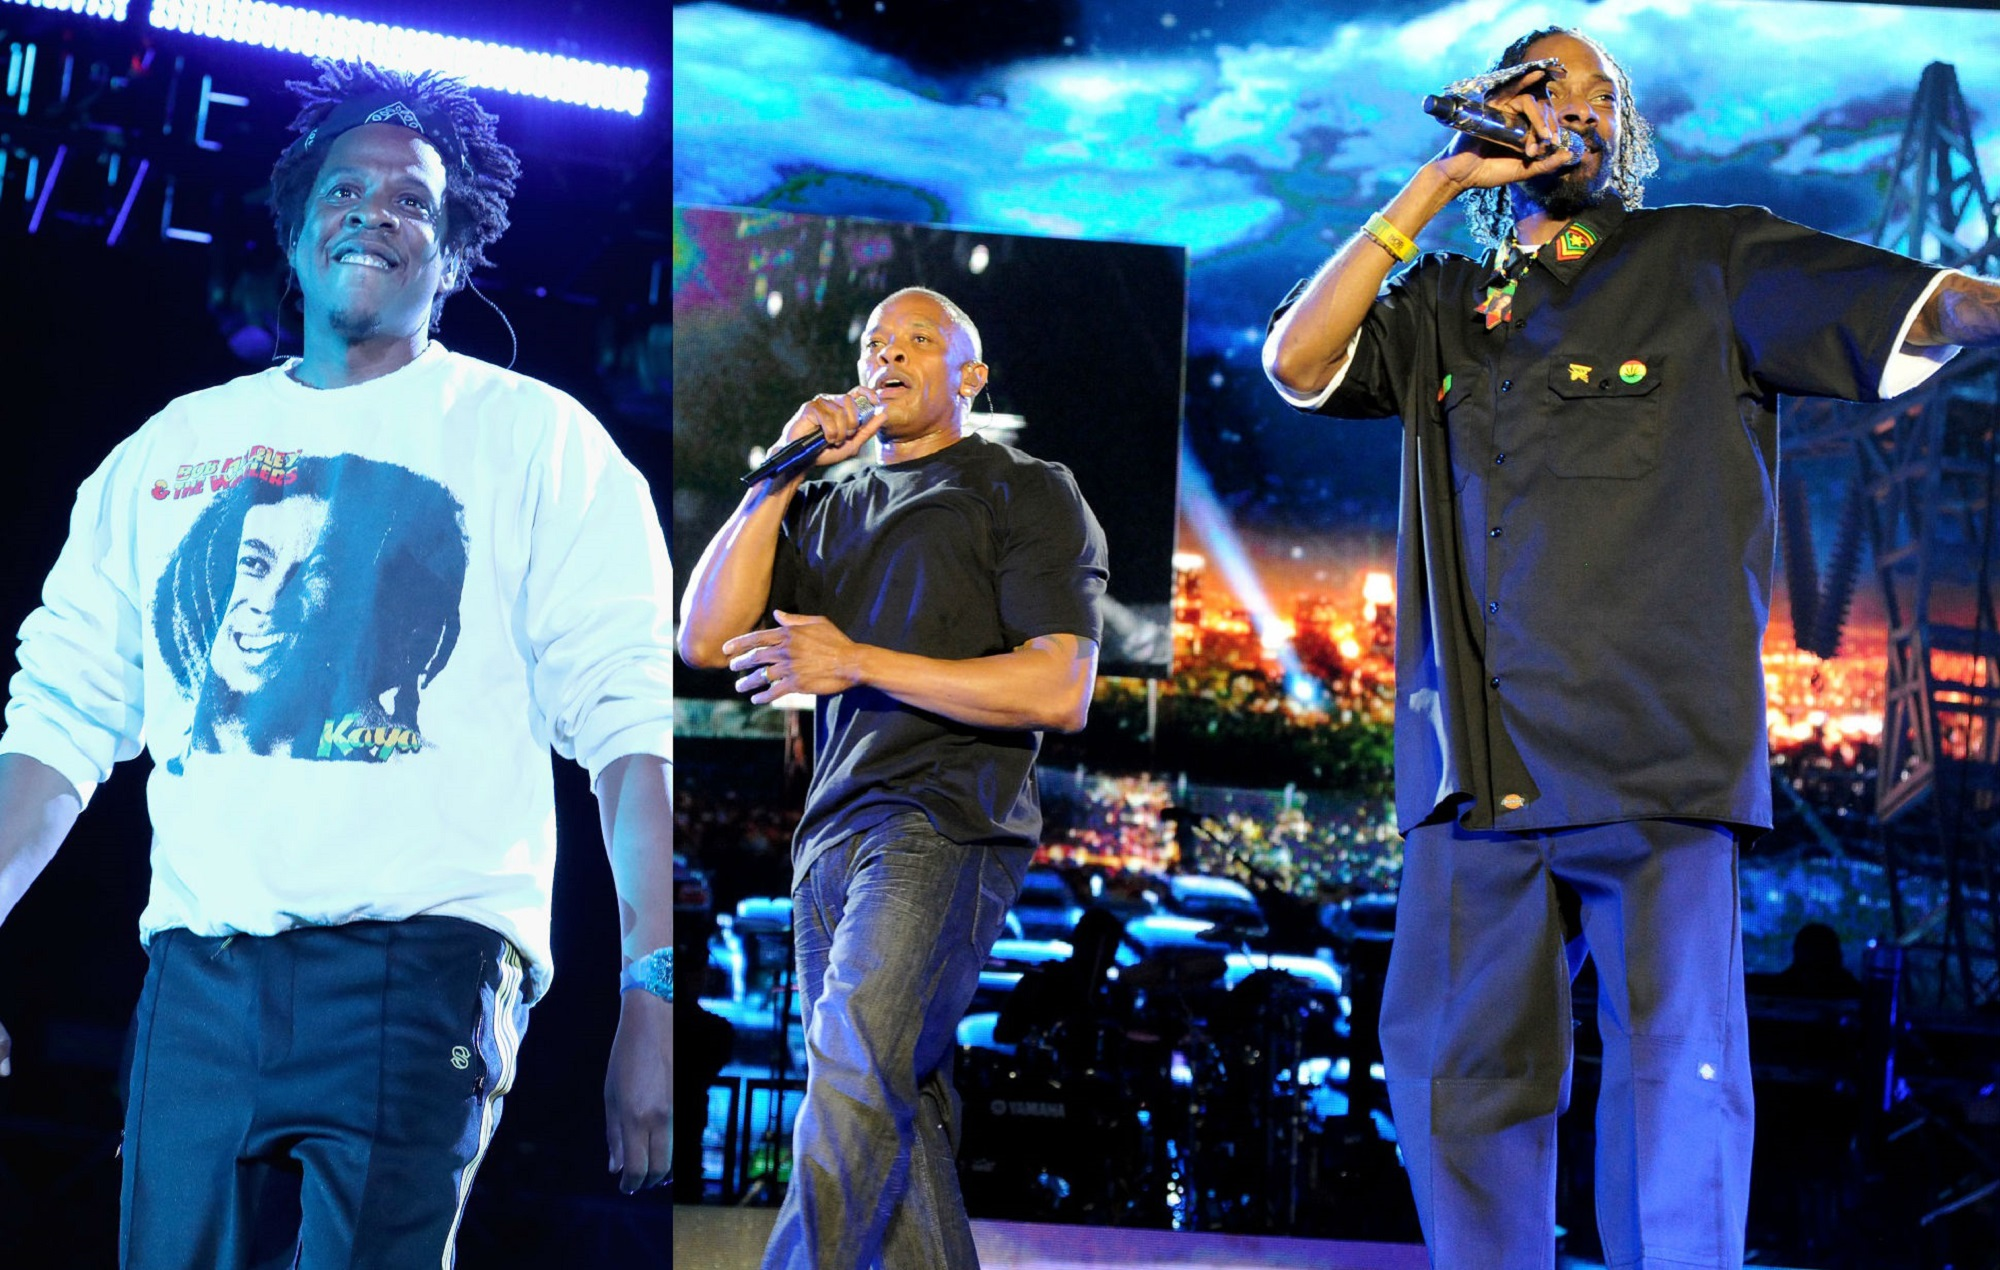 https://celebritycontent.com/2020/08/01/snoop-dogg-confirms-jay-z-wrote-dr-dres-still-d-r-e-in-full/